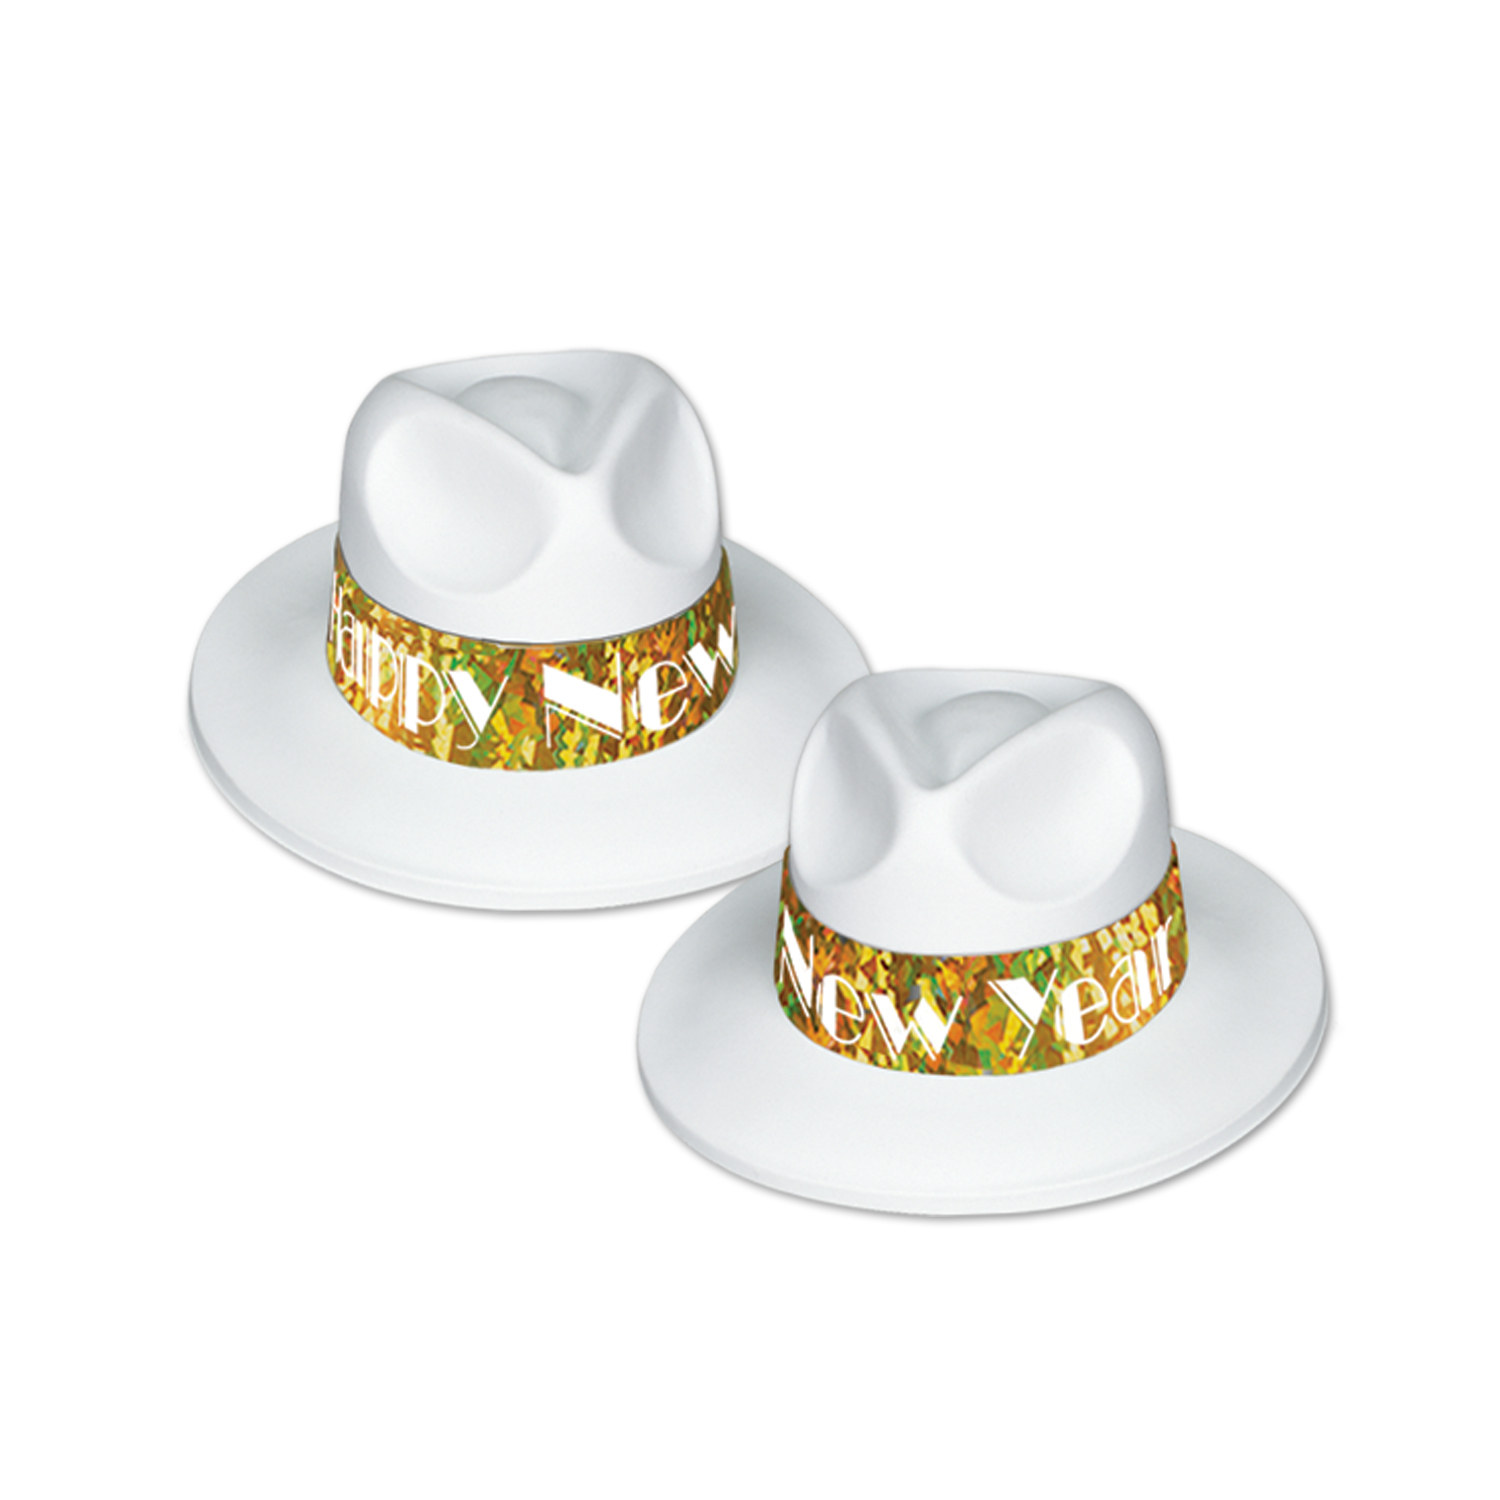 LA Swing Gold Fedora white & gold